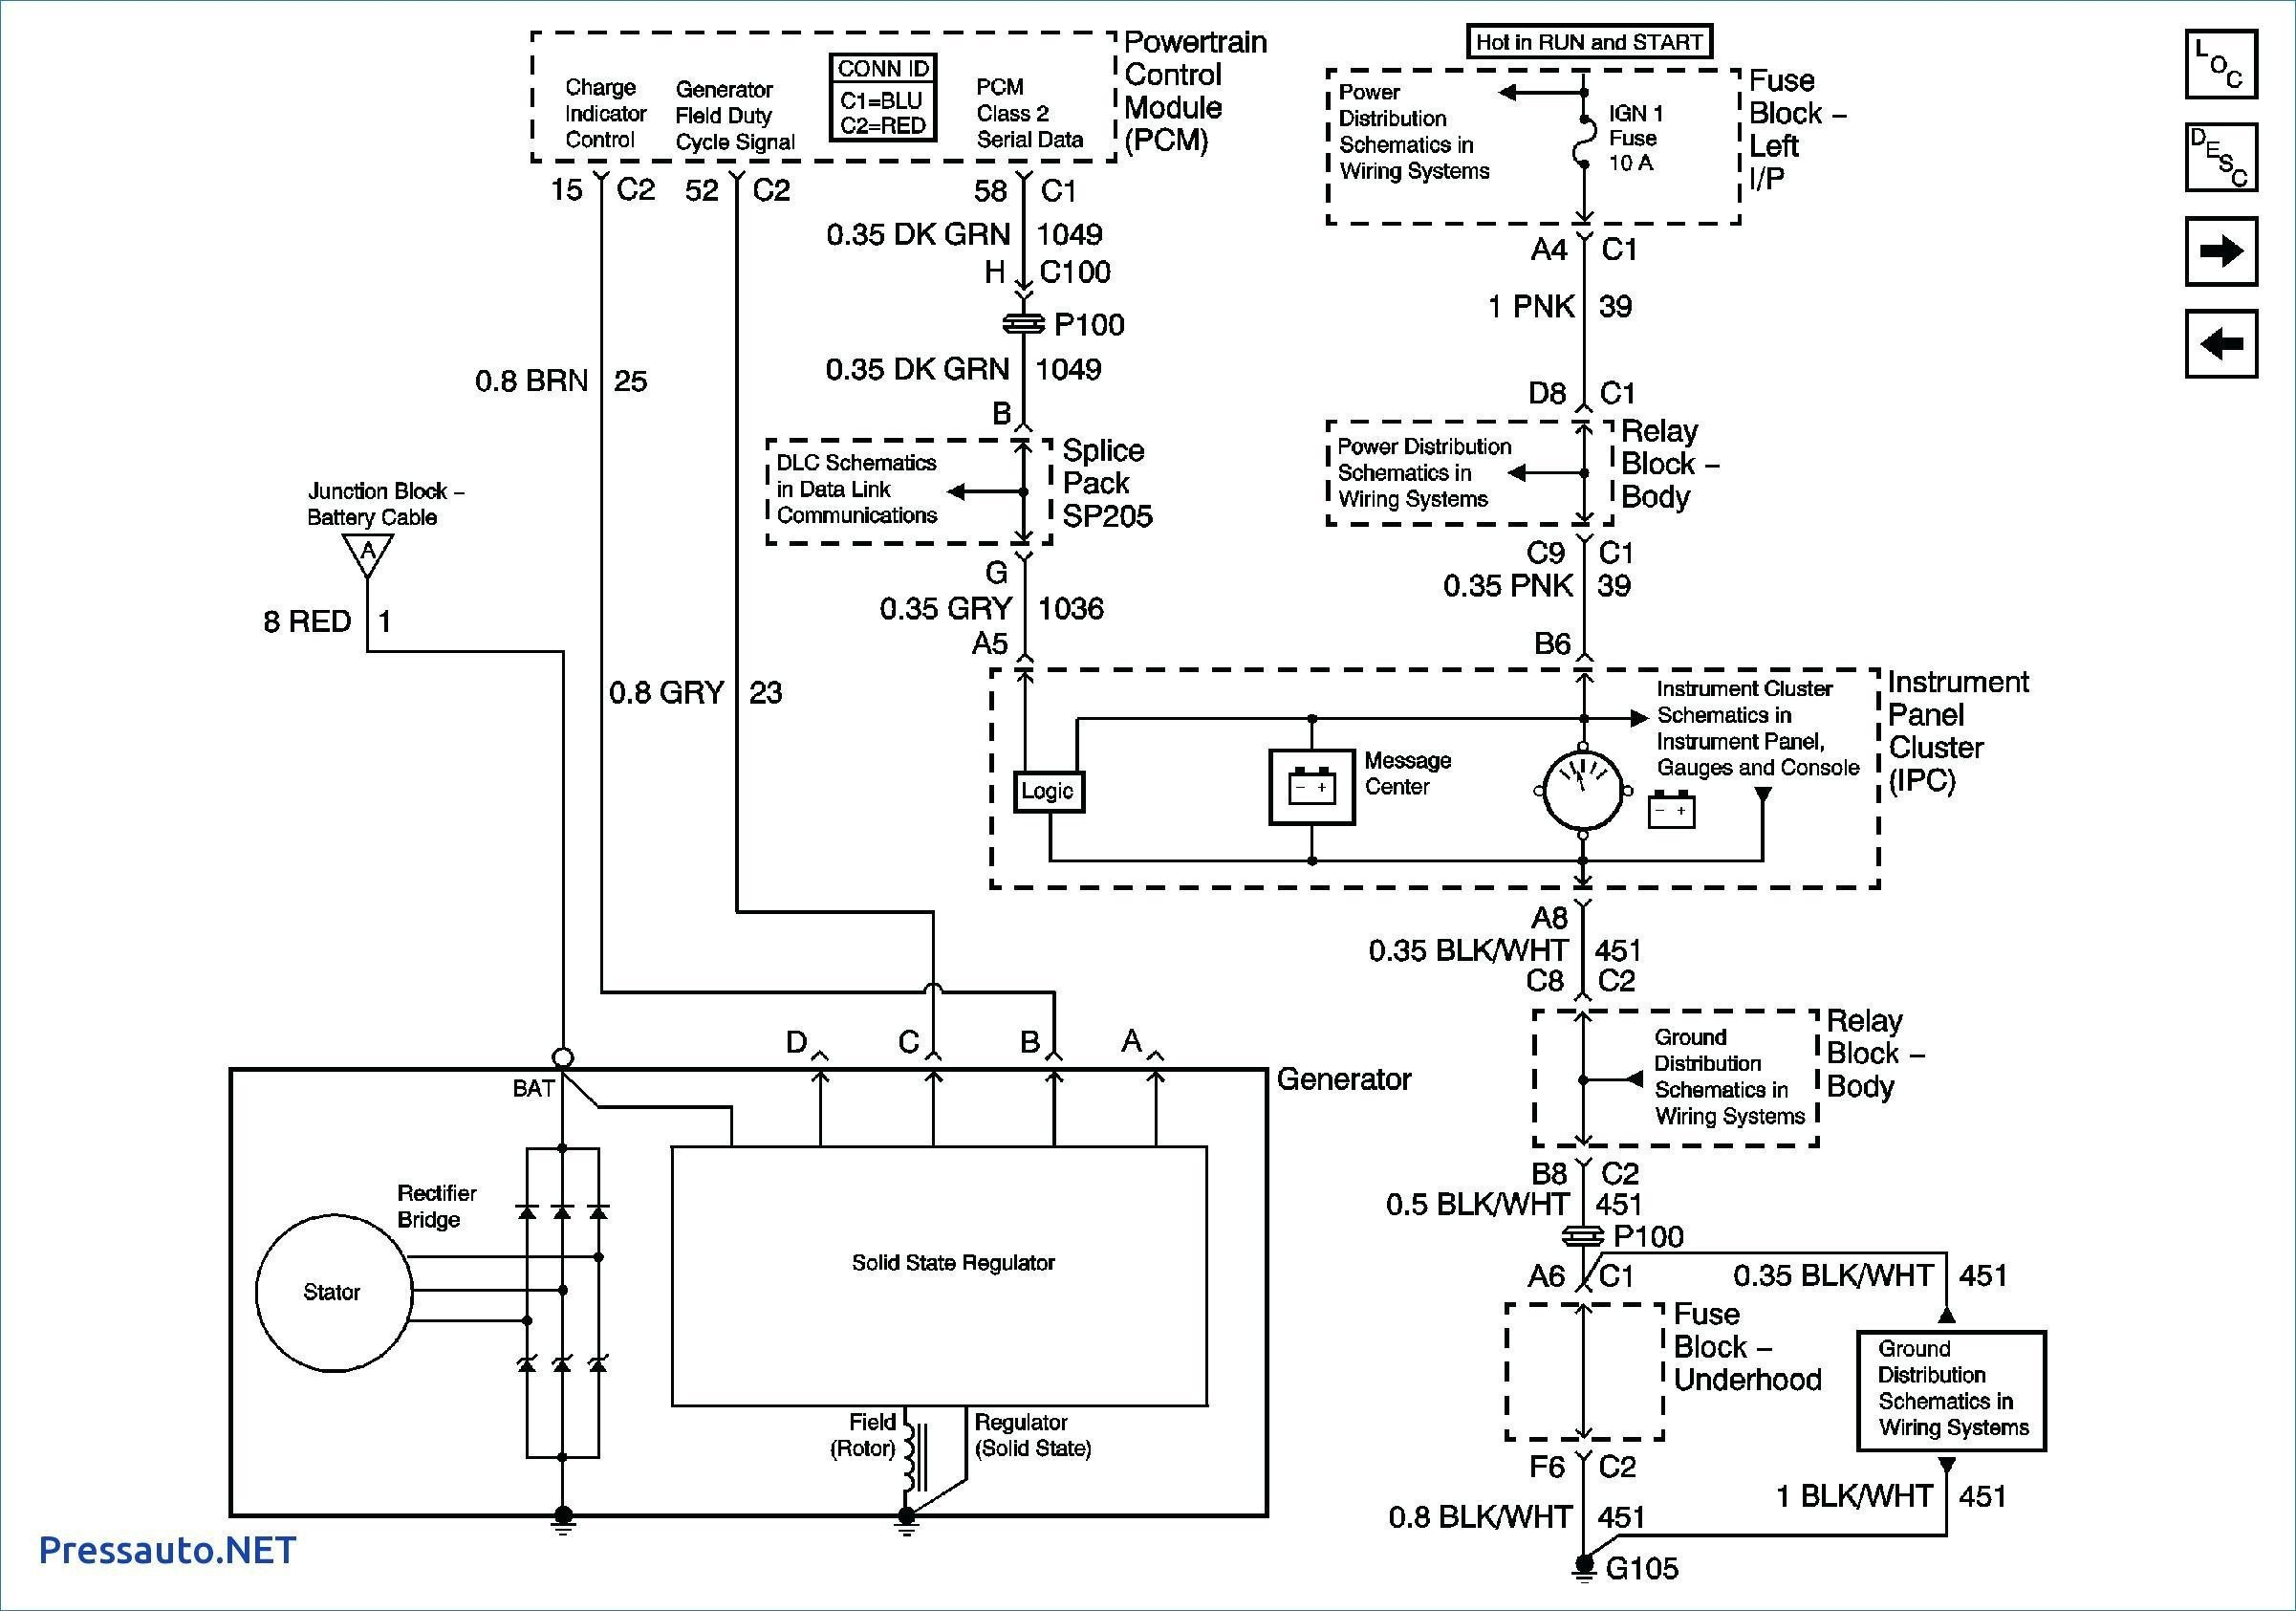 Electrical Engineering Block Diagram Rj45a Wiring Diagram Experts Wiring Diagram • Of Electrical Engineering Block Diagram